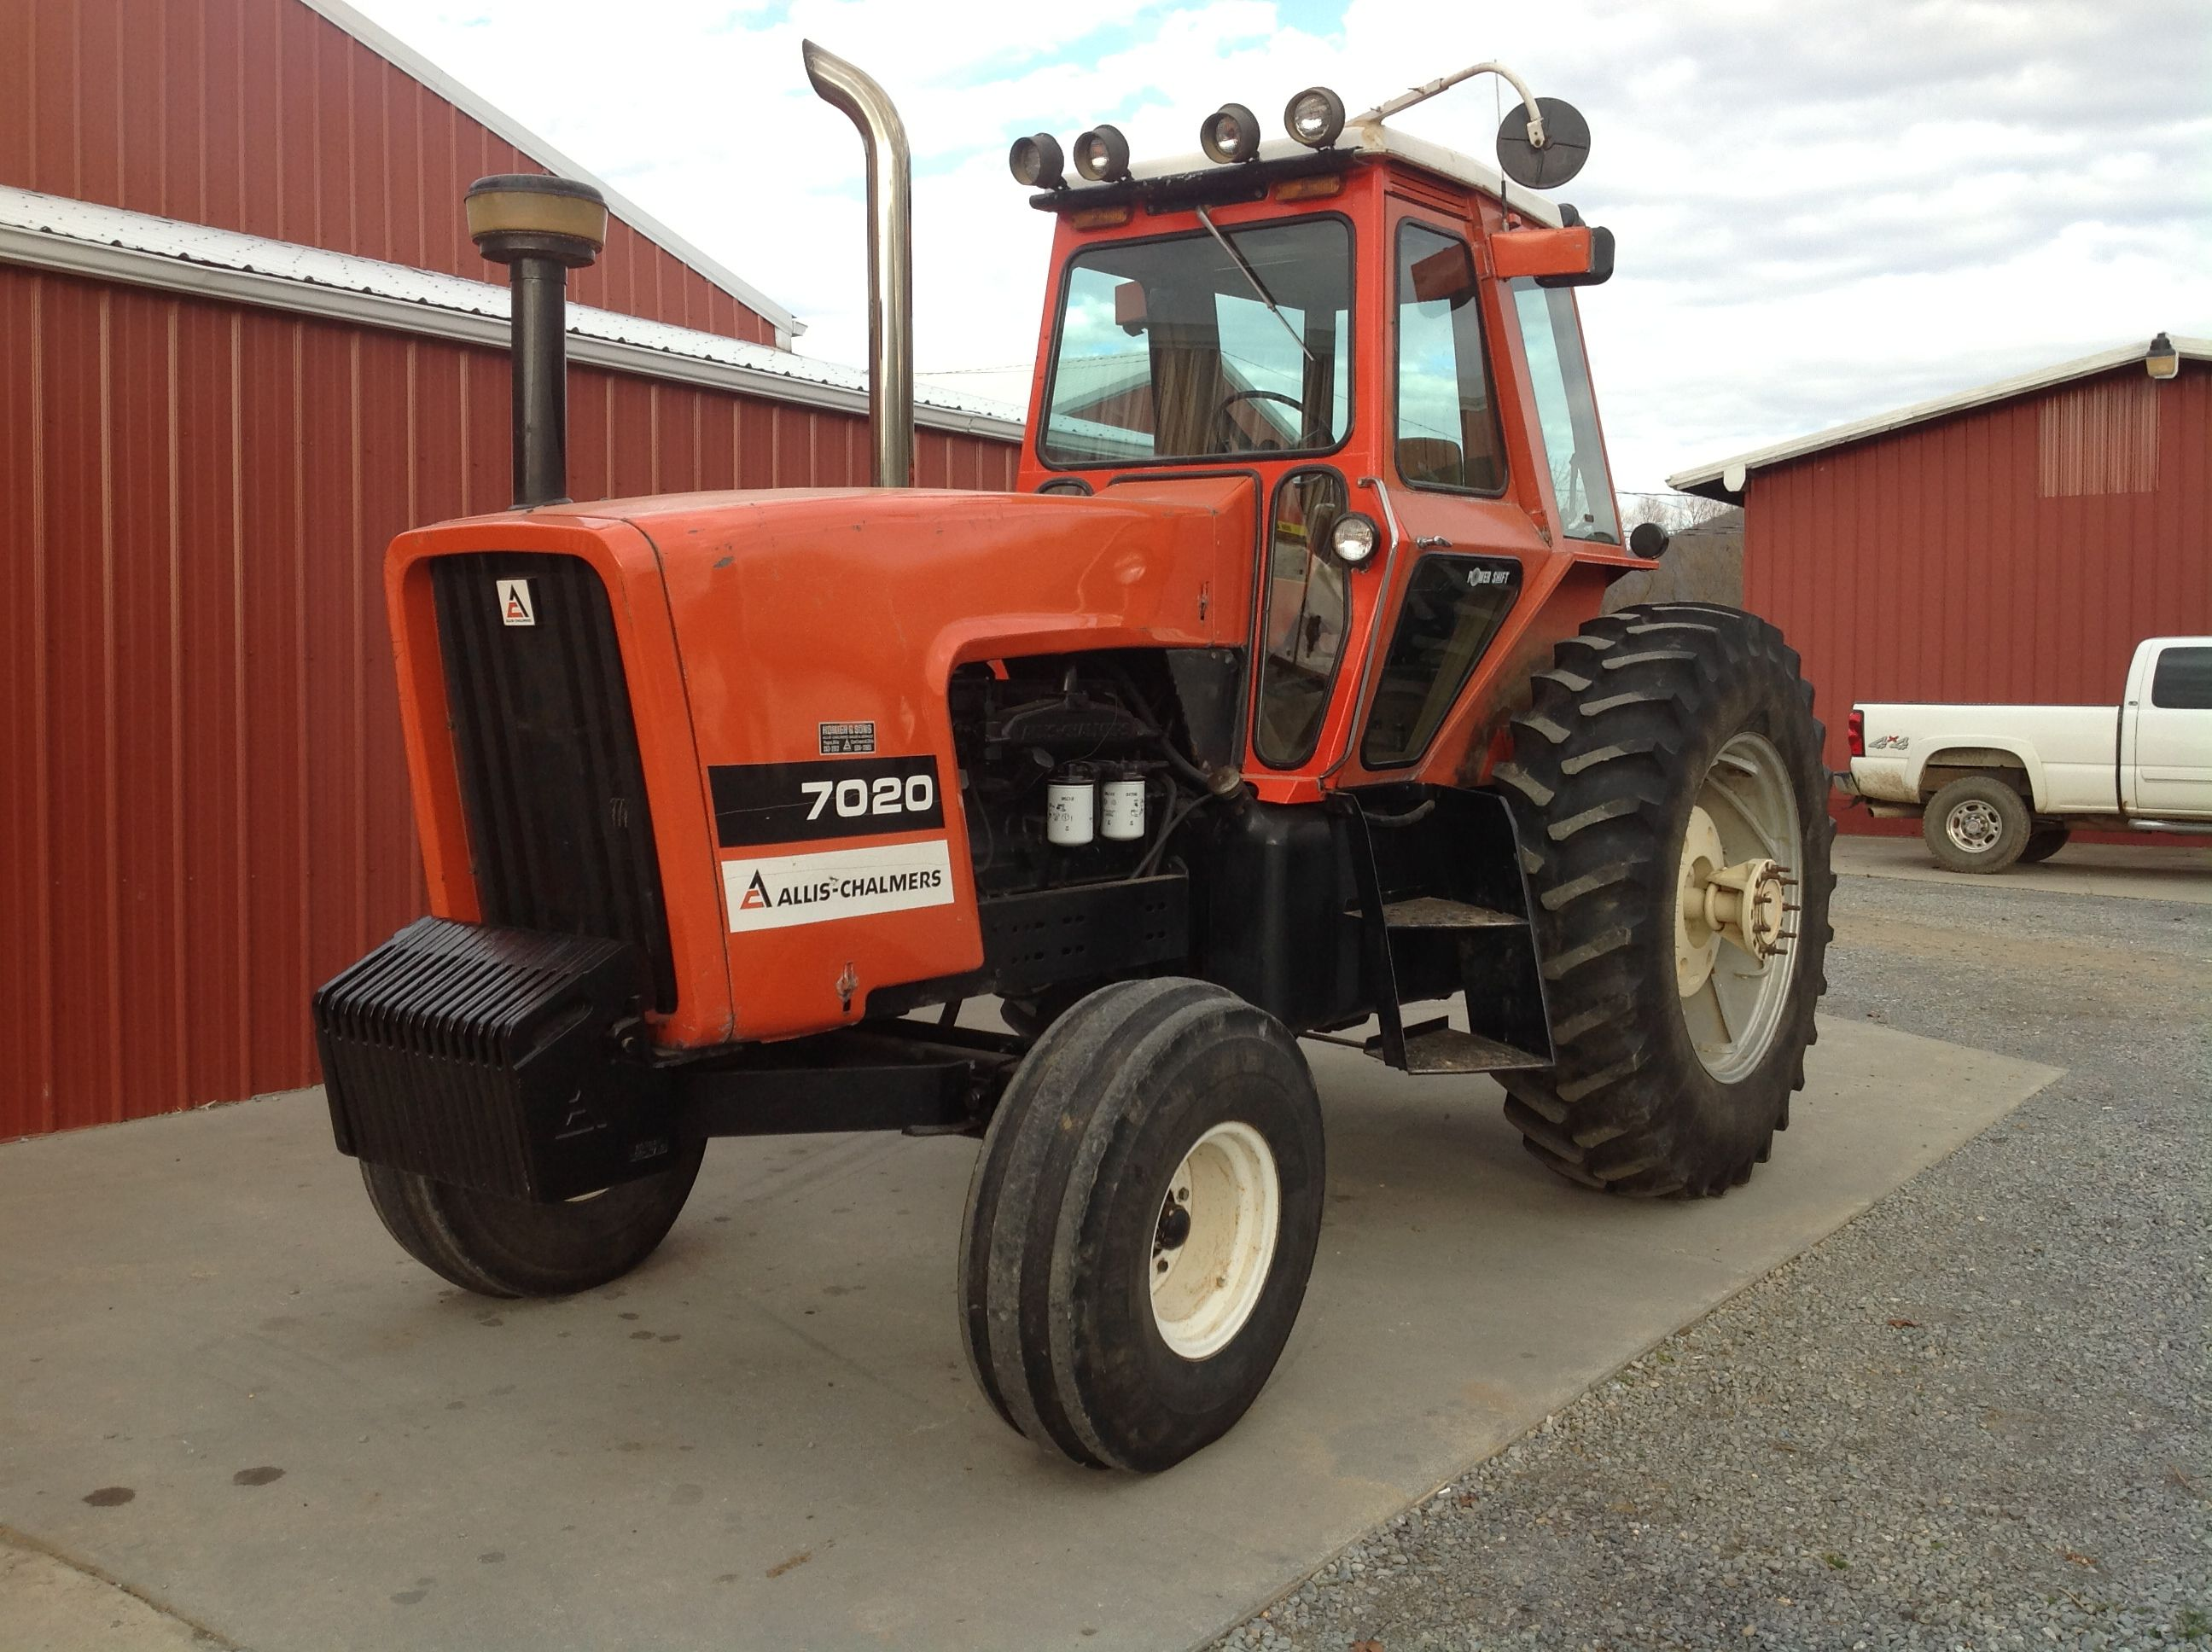 7020 Allis Chalmers Google Search Tractors Made In West Allis